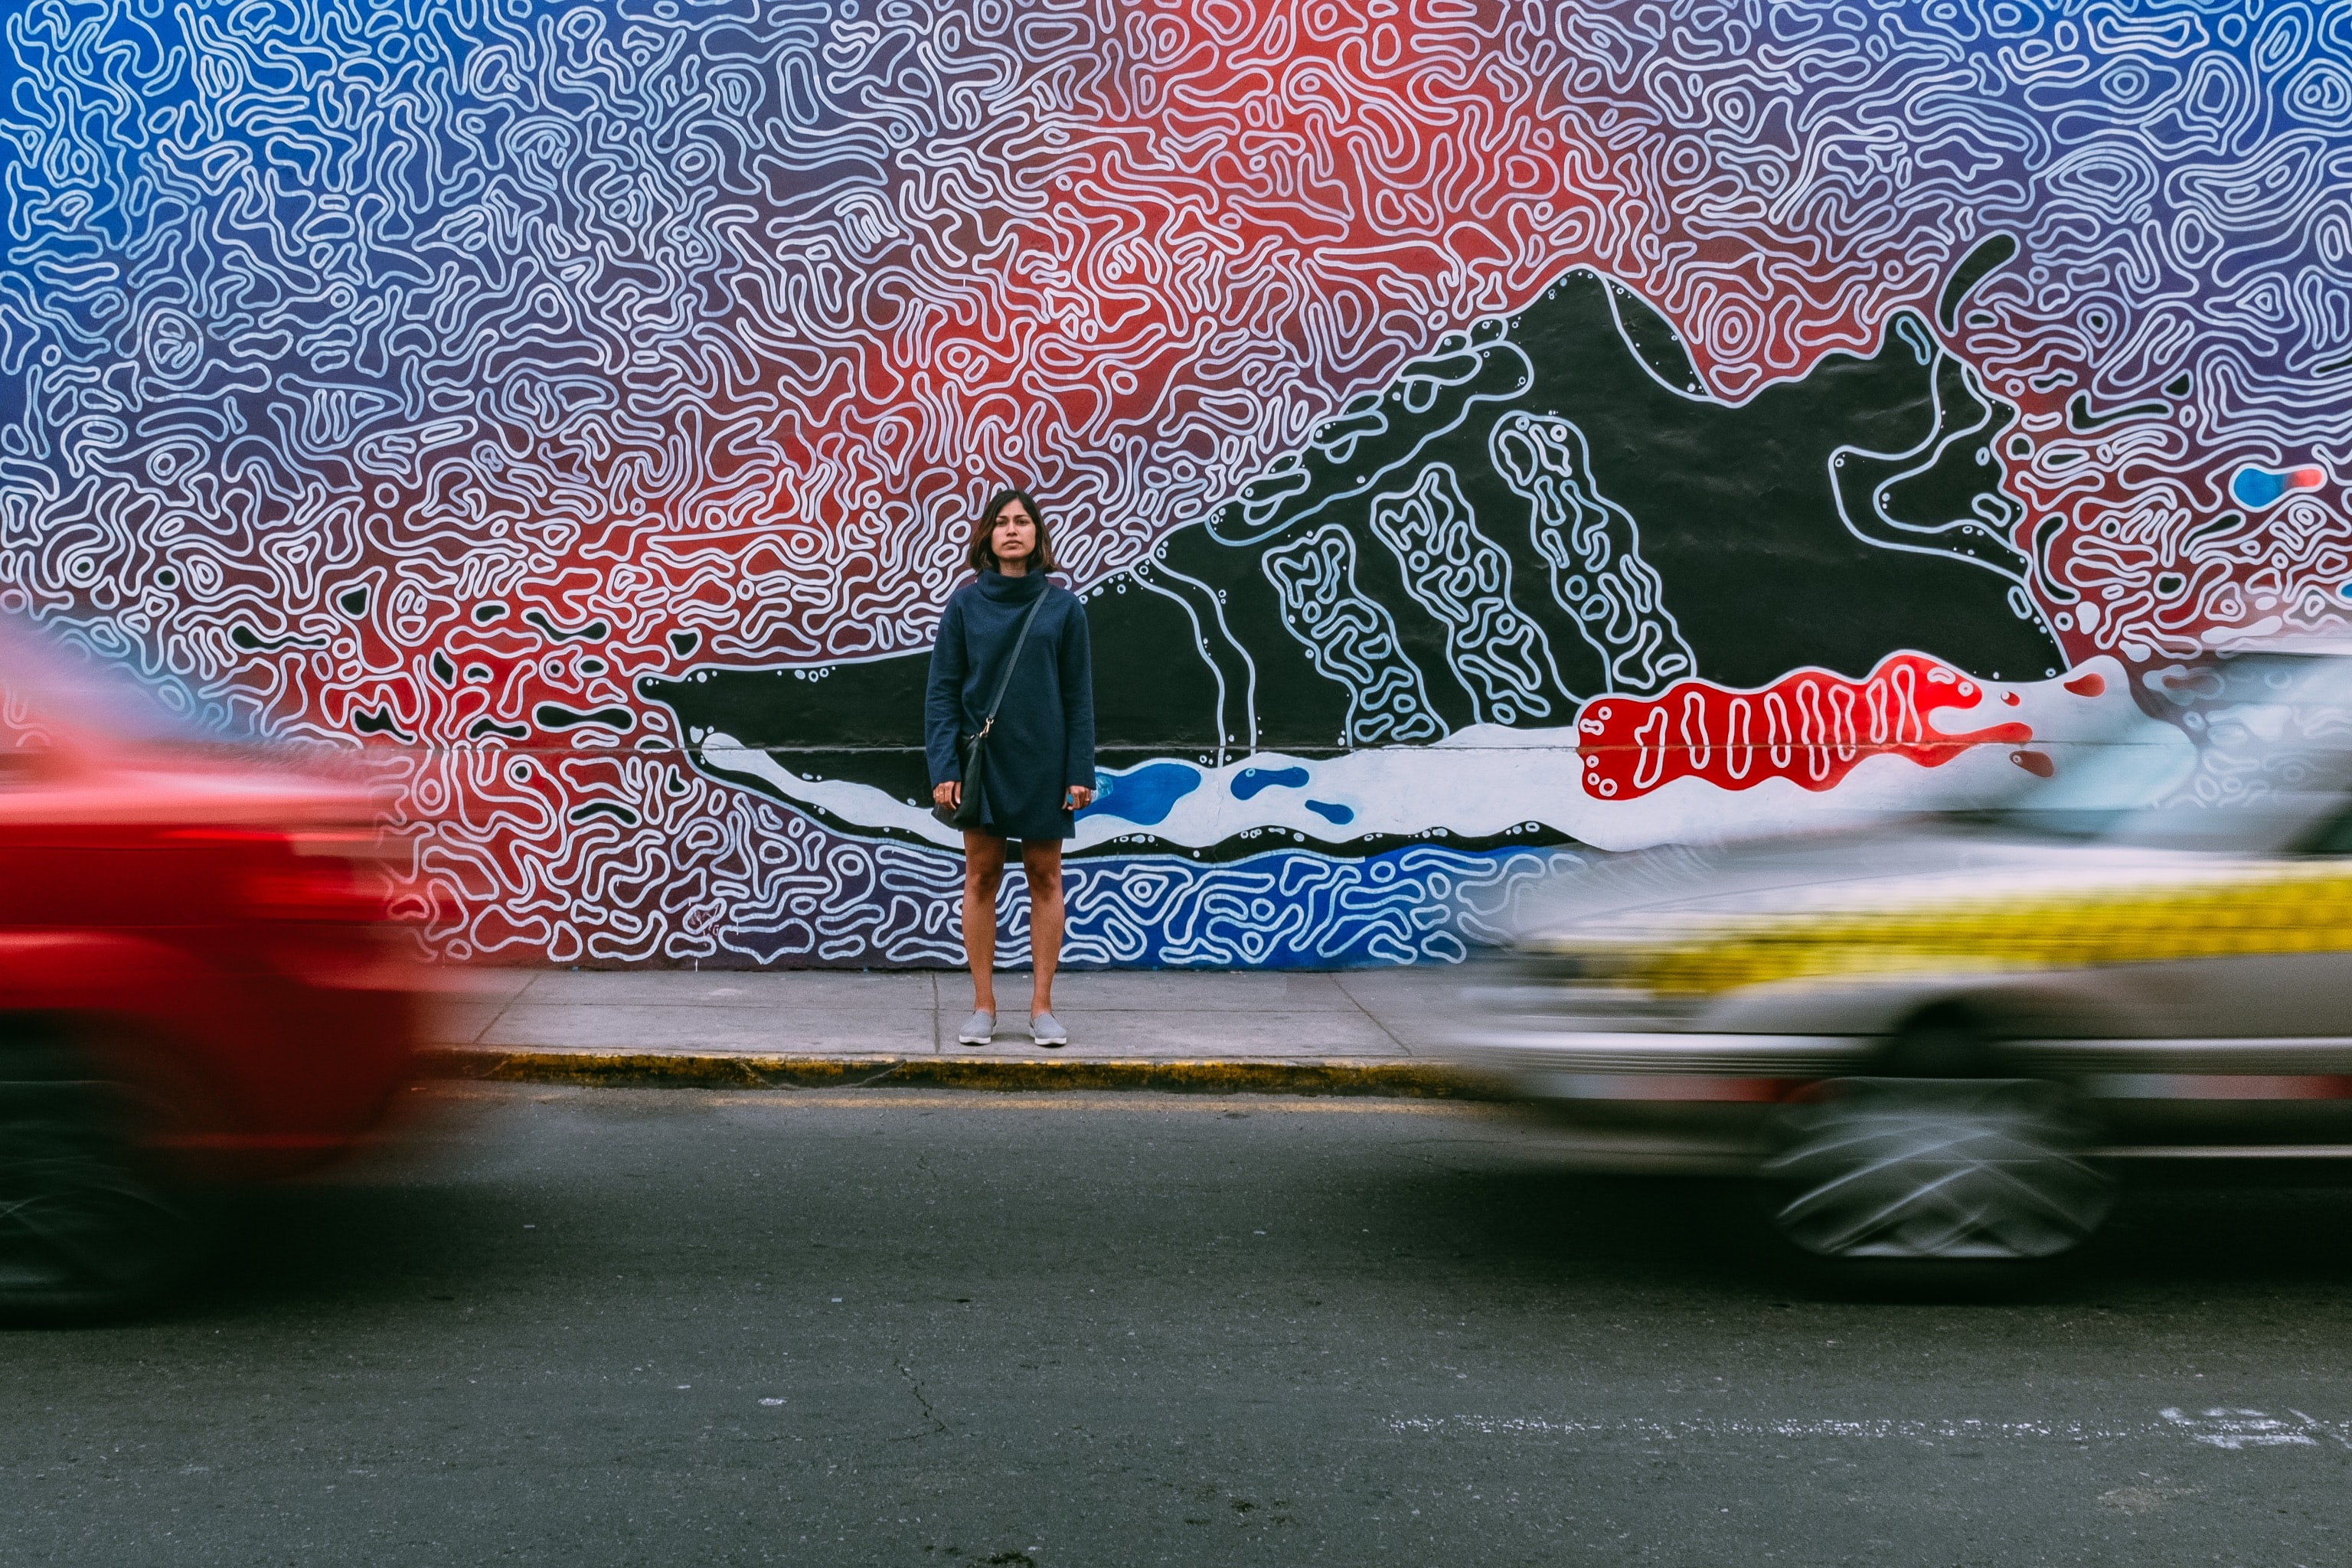 time lapse photography of woman wearing blue jacket standing on concrete pathway in front of two vehicles passing on concrete road during daytime